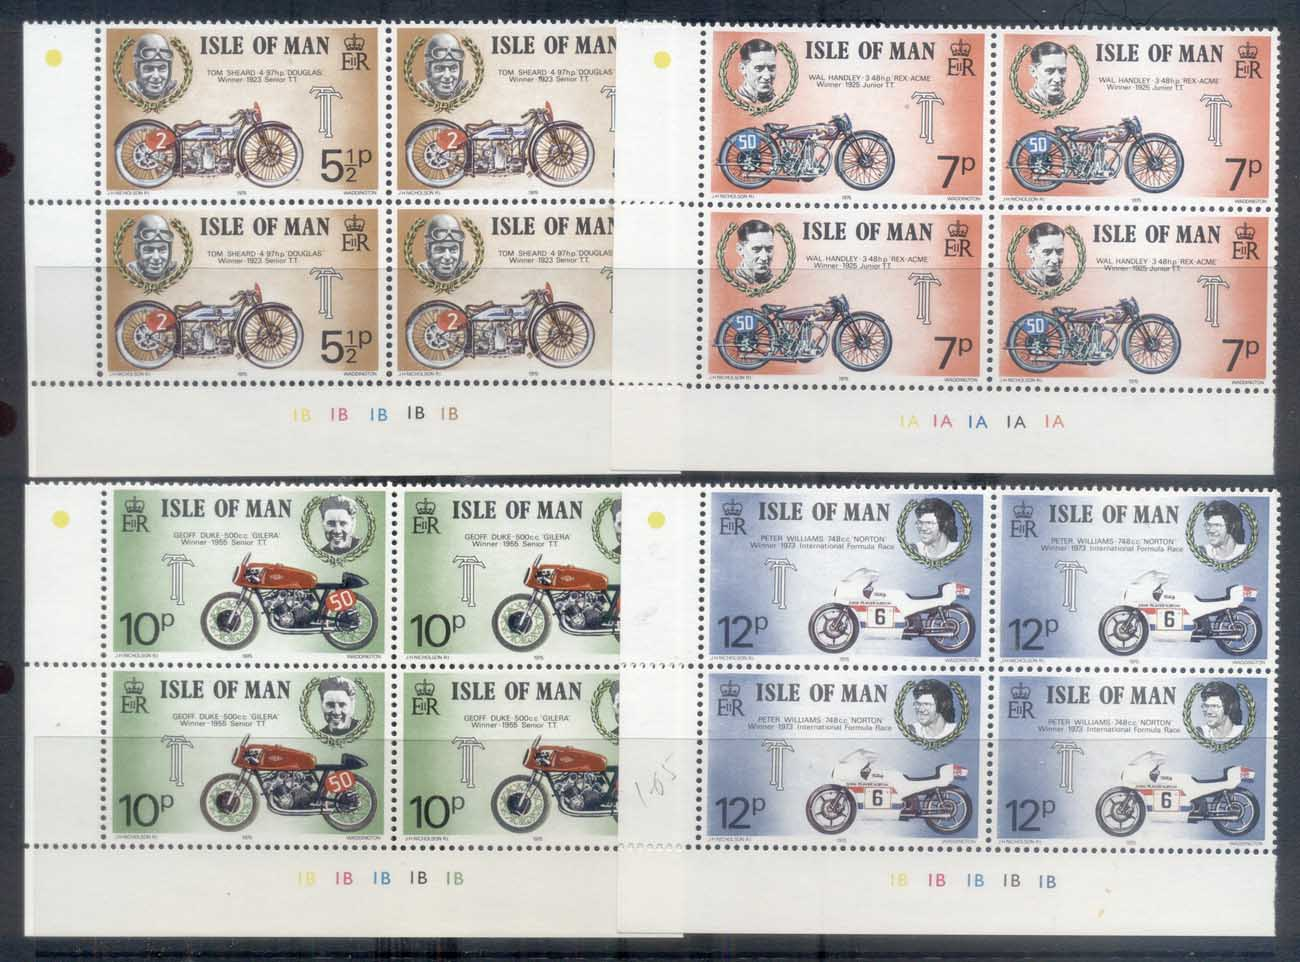 Isle of Man 1975 TT Races, Tourist Trophy Motorcycle Races Blk4 MUH